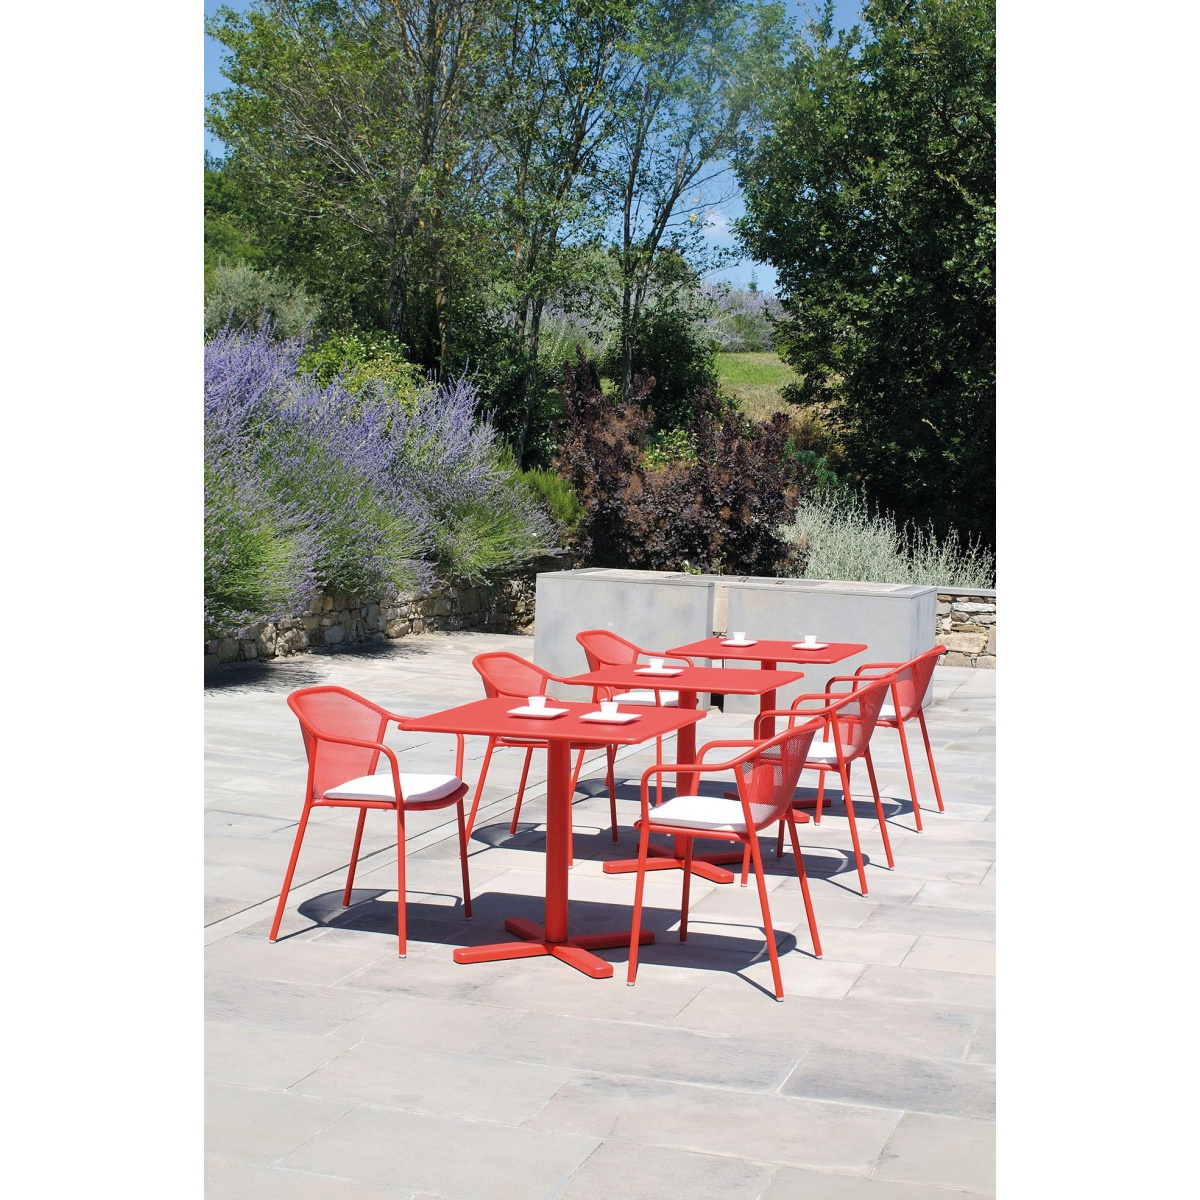 Rudimentary BFM Dining Chairs Florida Products - Some Questions To Ask krzeslo-ogrodowe-darwin-emu